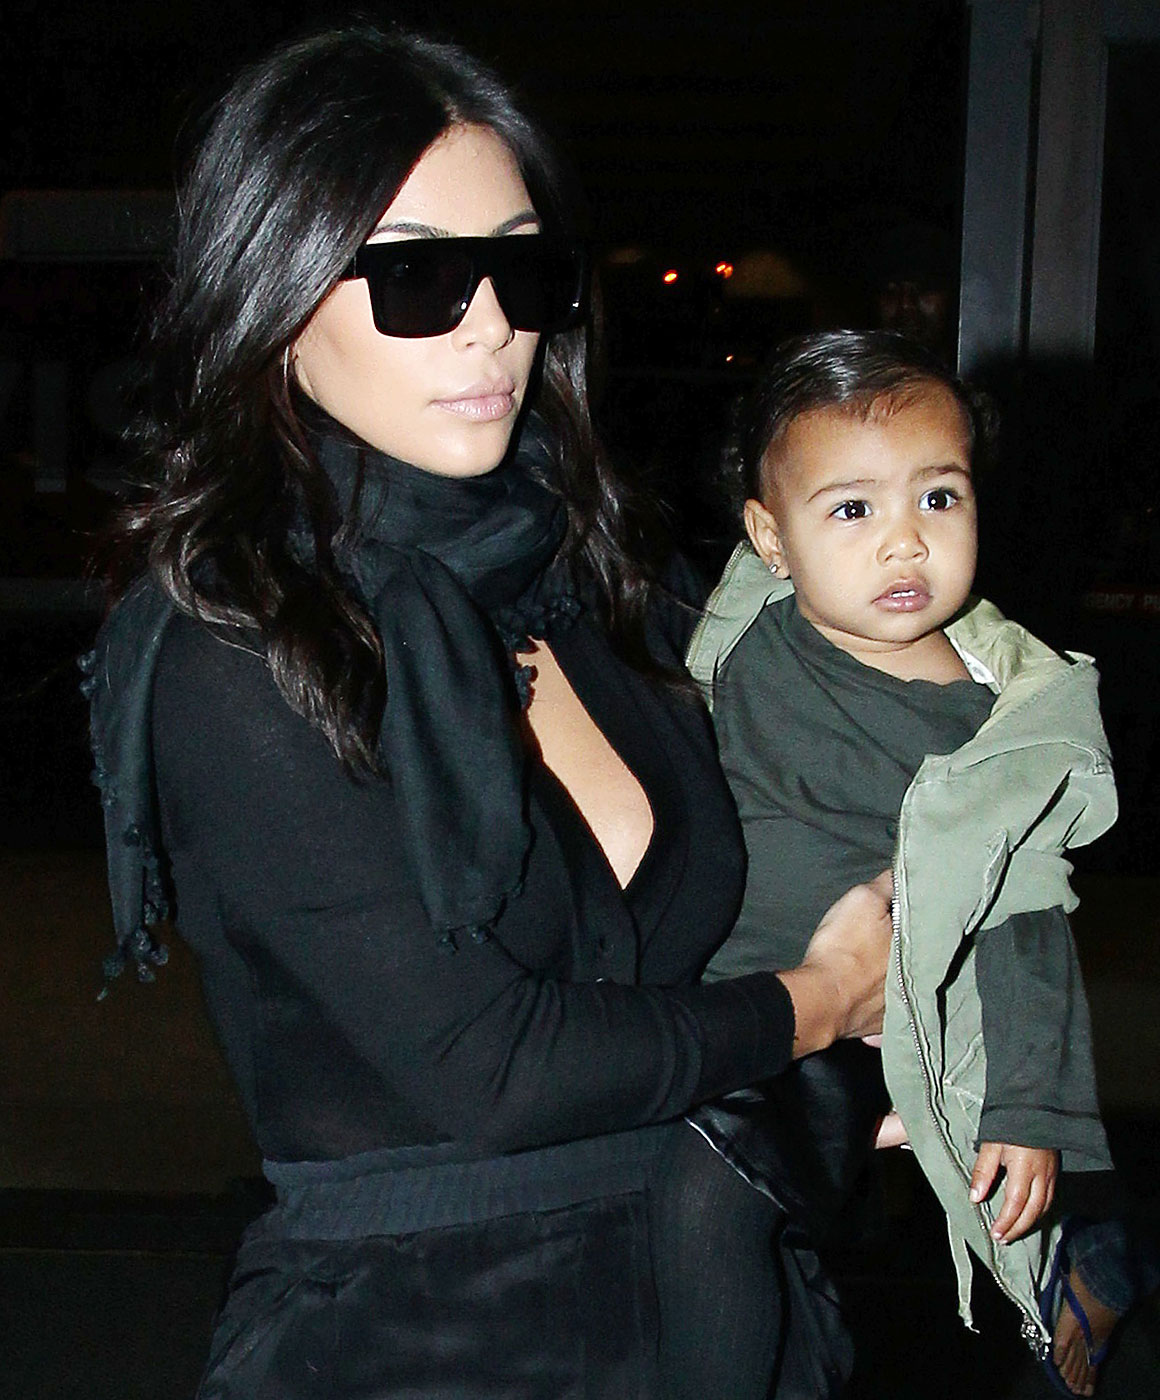 Kim Kardashian, husband Kanye West and baby North West depart from Los Angeles International Airport on Sept. 1, 2014.